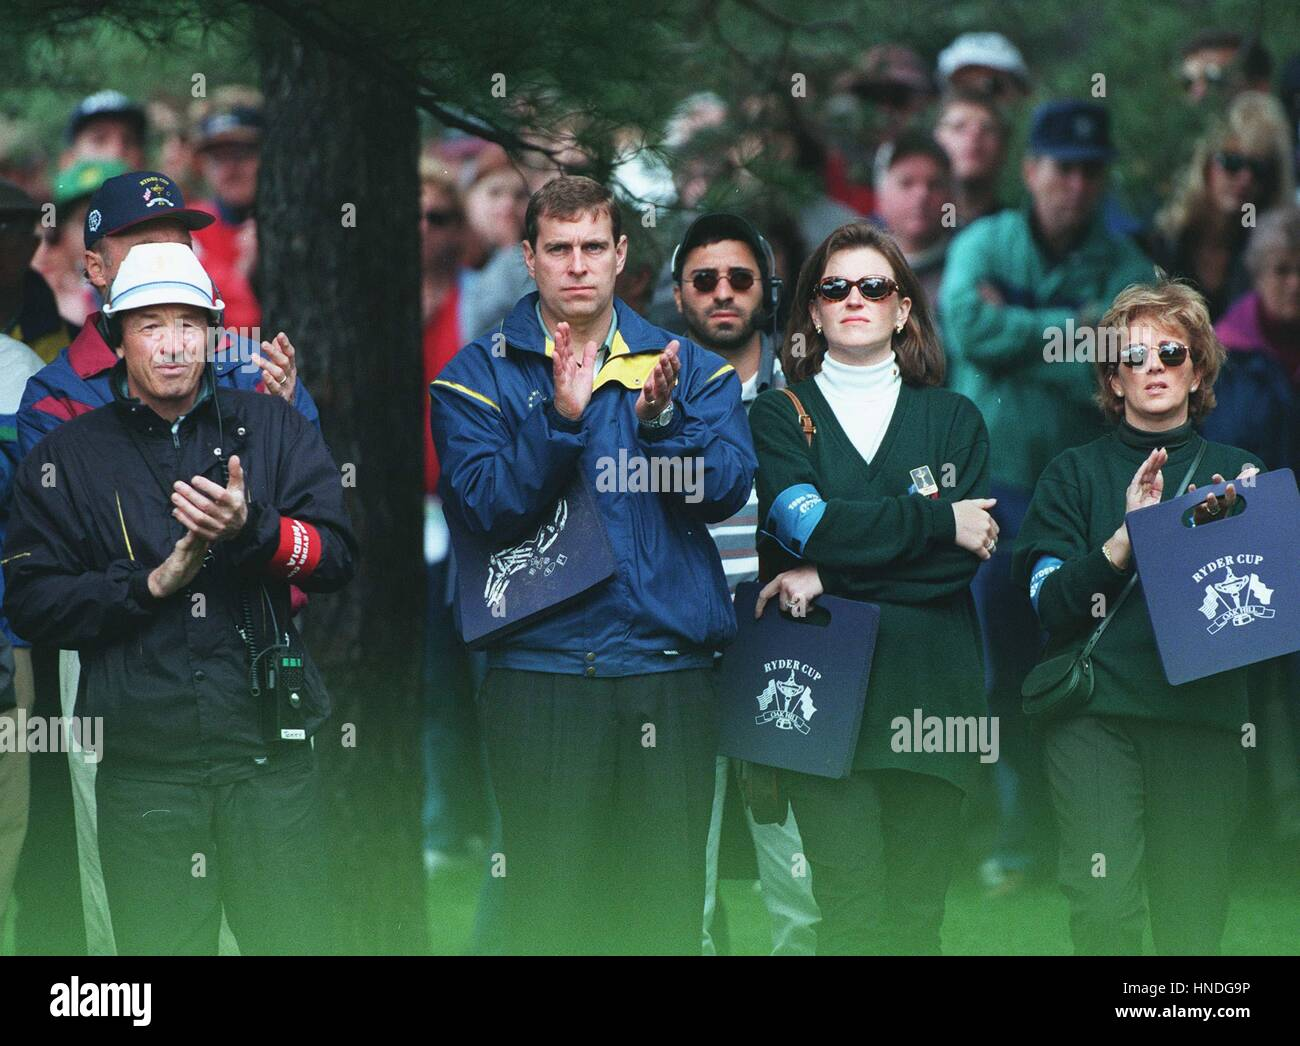 PRINCE ANDREW WATCHES THE RYDER CUP AT OAK HILL.N.Y. USA 02 October 1995  Stock Photo - Alamy